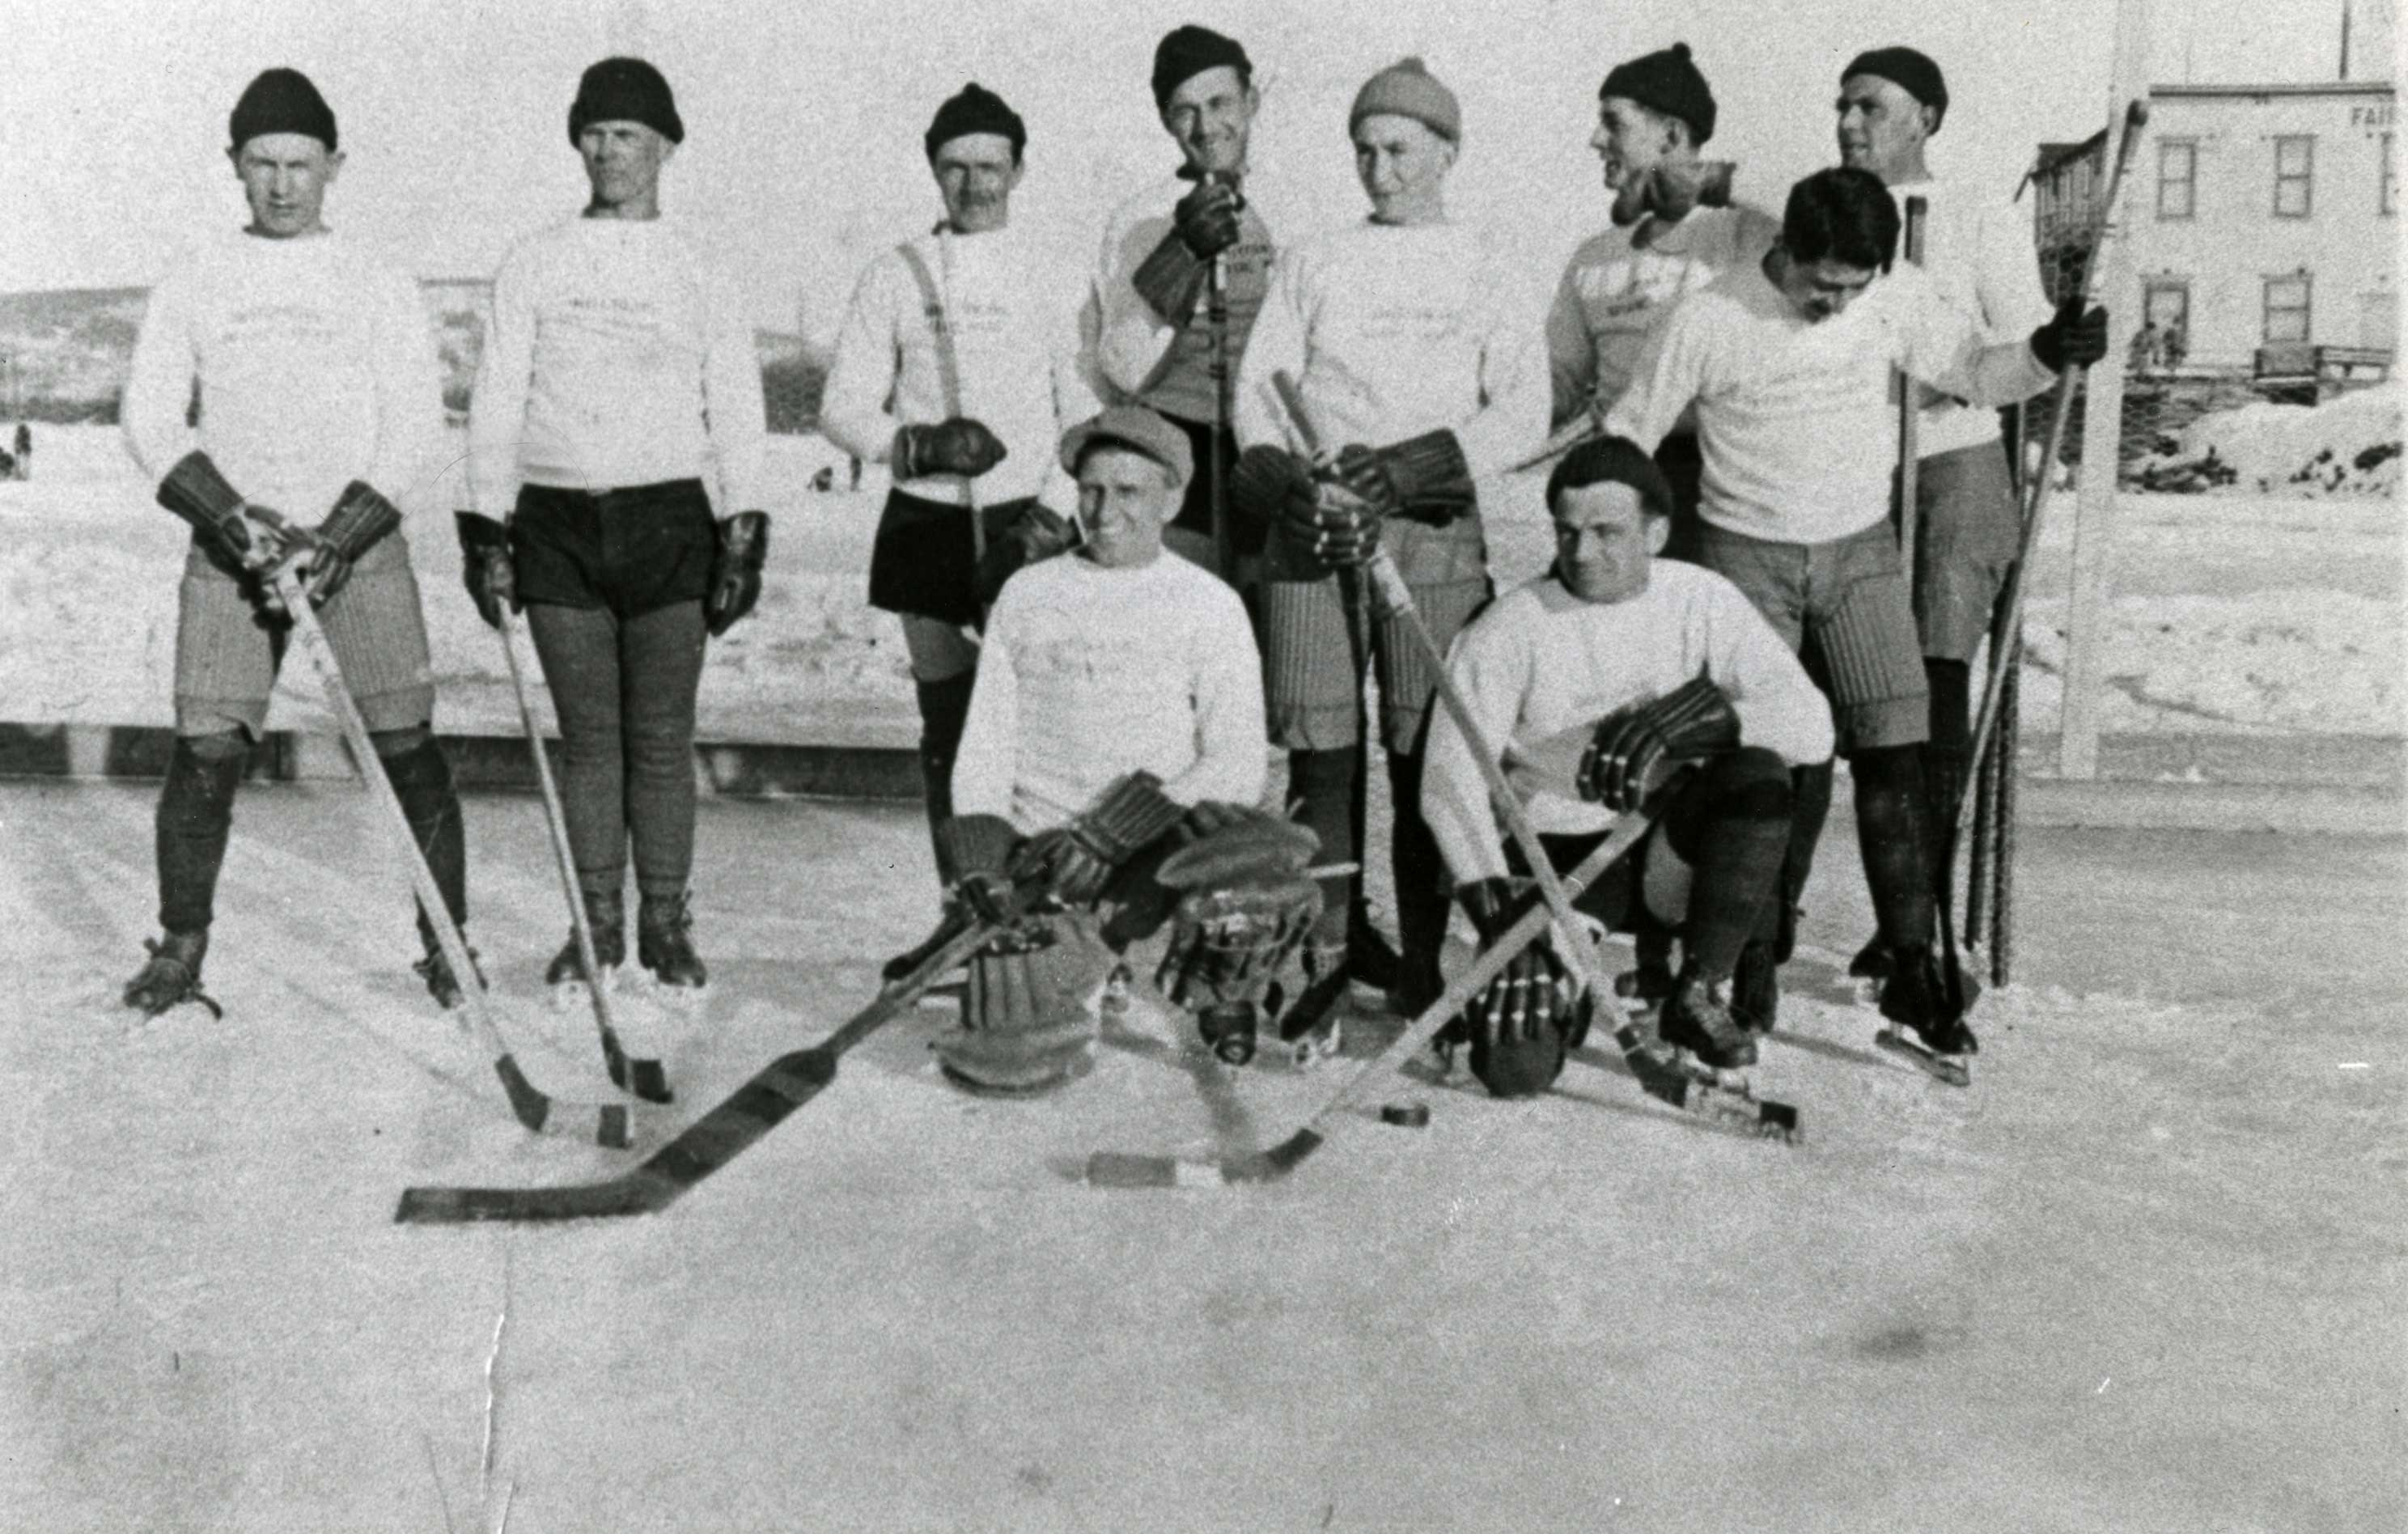 Facts about Anchorage. Anchorage's first Hocky Team came together in 1935. AnchorageMemories.com